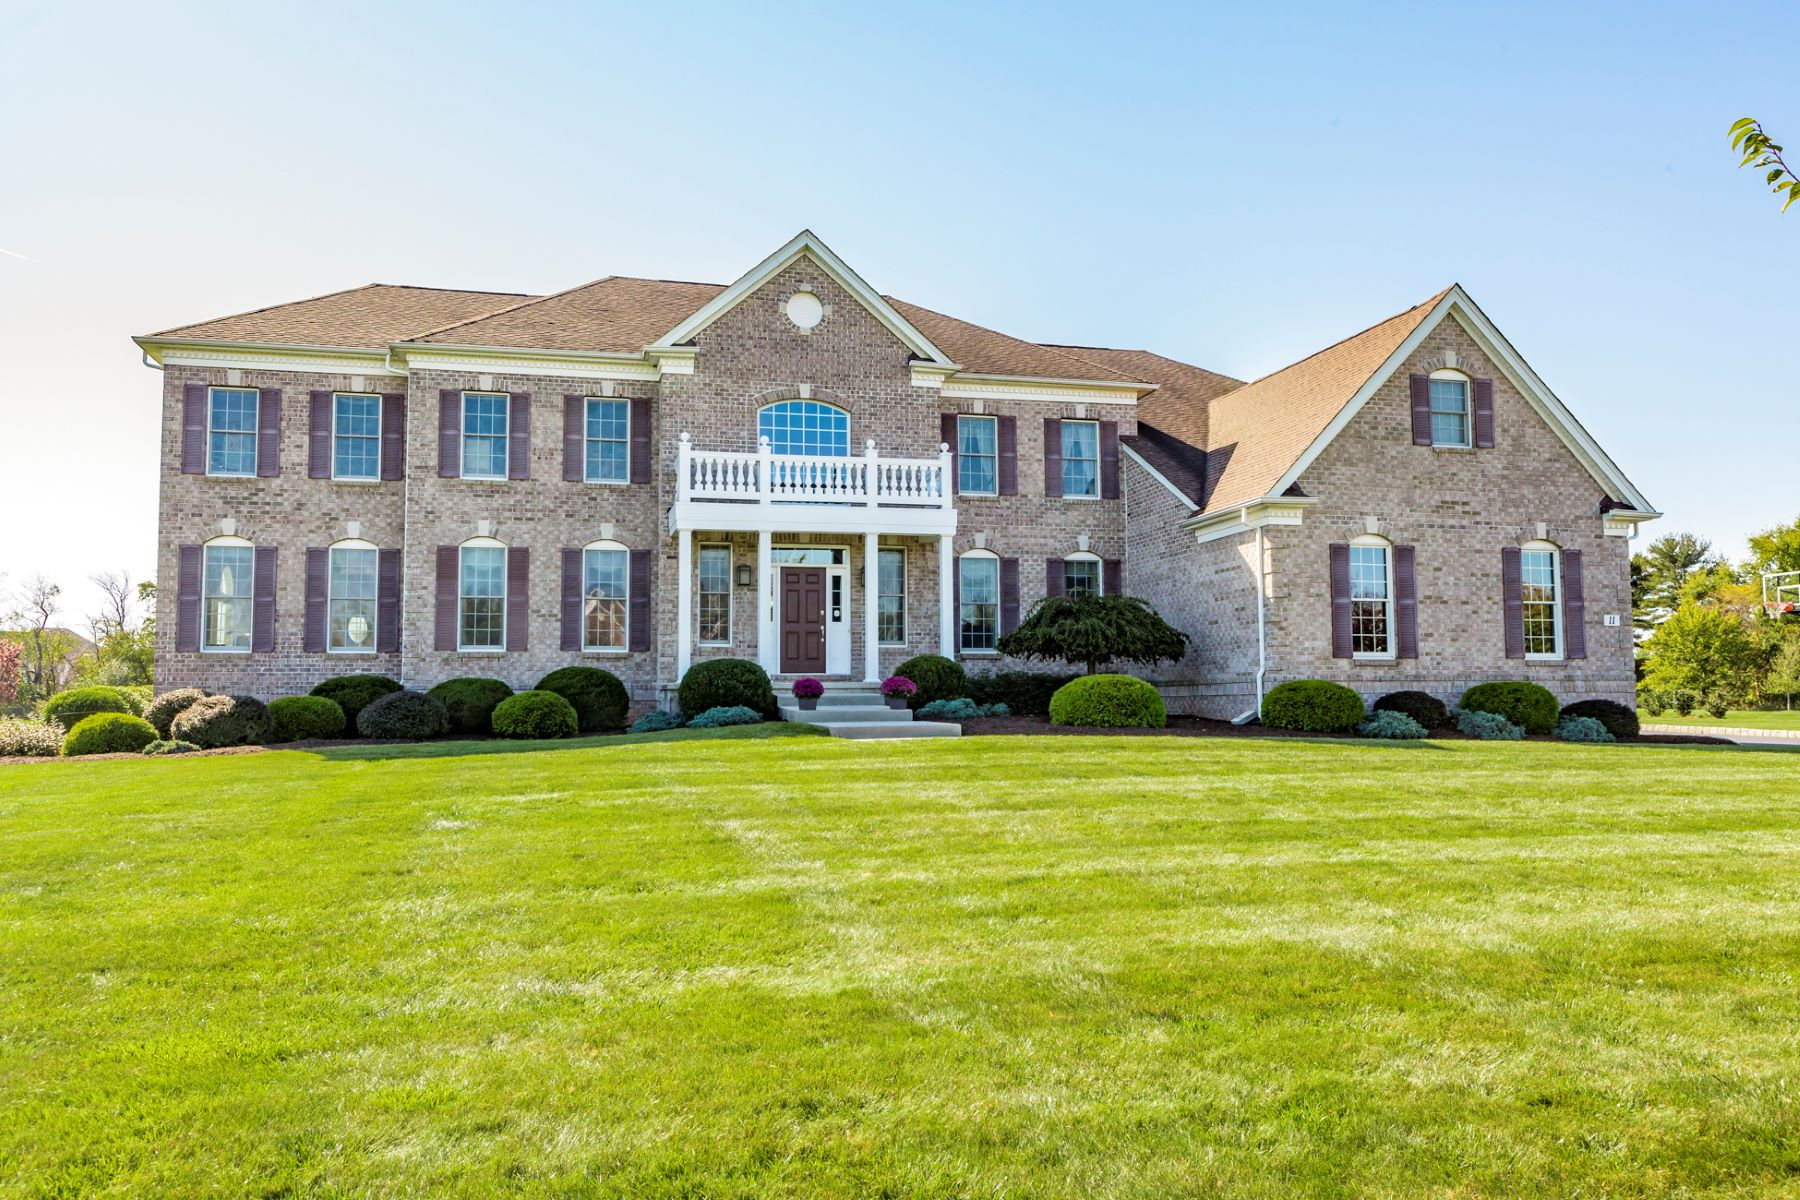 Property vì Bán tại Luxury, Craftsmanship, Warmth in Perfect Measure 11 Hendrickson Court, Hillsborough, New Jersey 08844 Hoa Kỳ